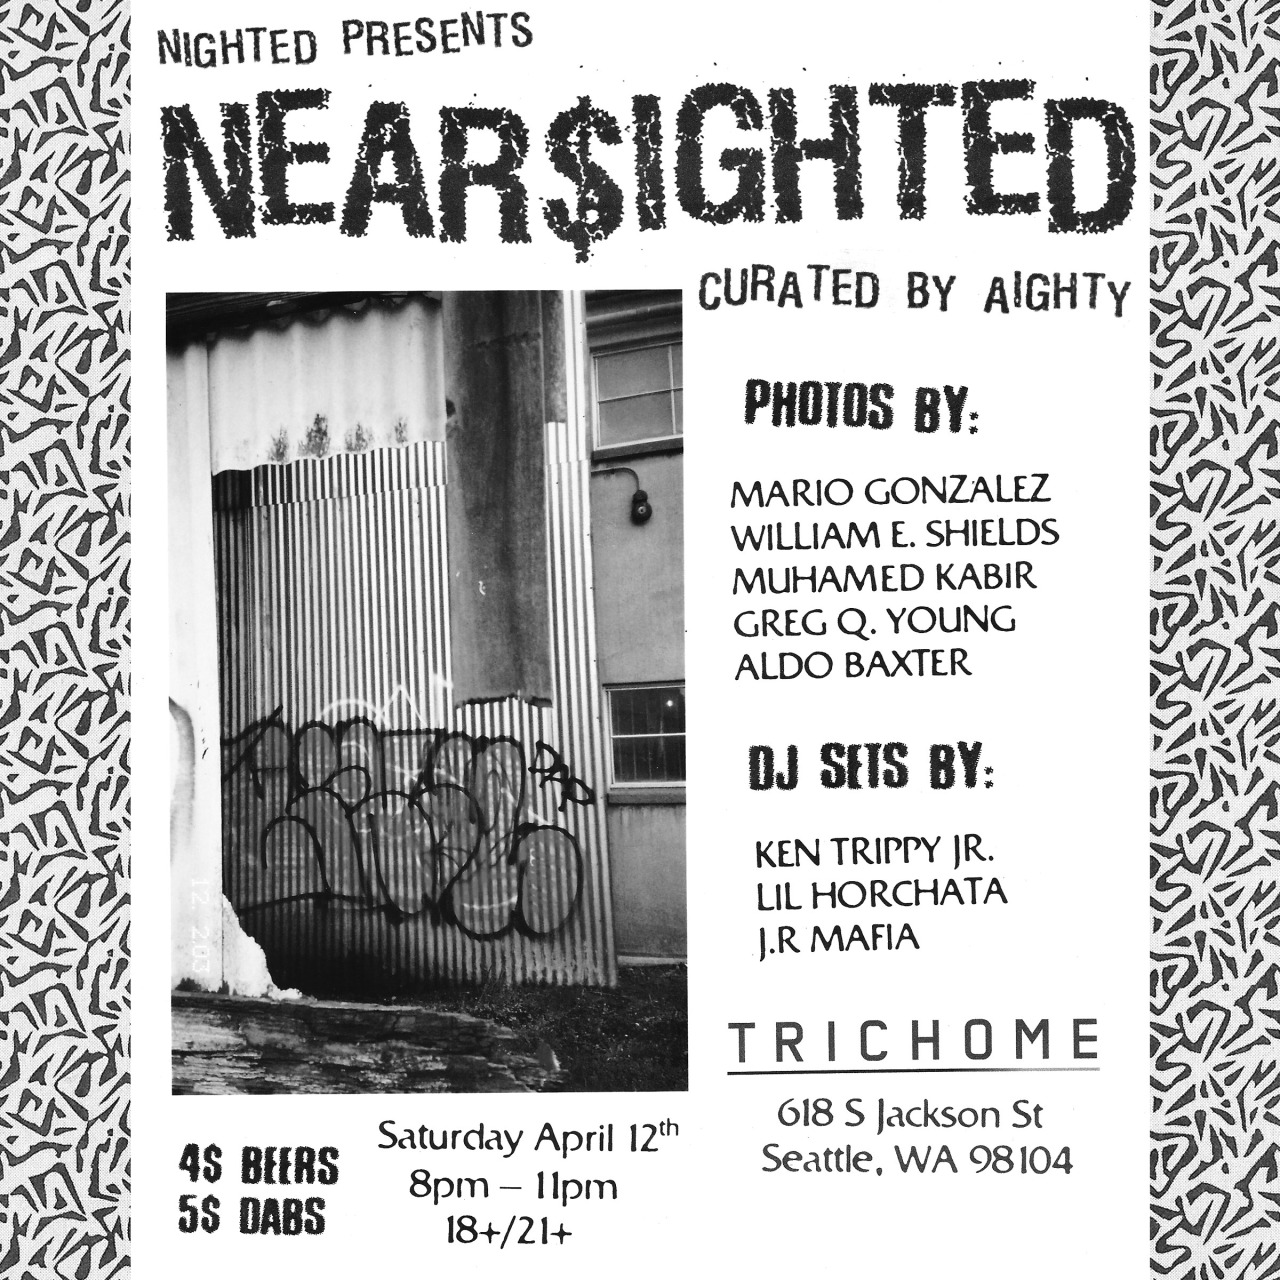 aighty :      SEATTLE: April 12th @ Trichome . PHOTOS,BEERS,DABS AND NEW RAP ALL NIGHT.    NEARSIGHTED at Trichome presented by Nighted.    Photos by Mario Gonazalez, William E. Shields, Muhamed Kabir, Greg Q Young, and Aldo Baxter    Dj Sets by Ken Trippy Jr, Lil Horchata, and J.R Mafia    Curated by Aighty    $4 BEERS & $5 DABS  18/21+ NO COVER   618 S. Jackson St.  Seattle WA 98104